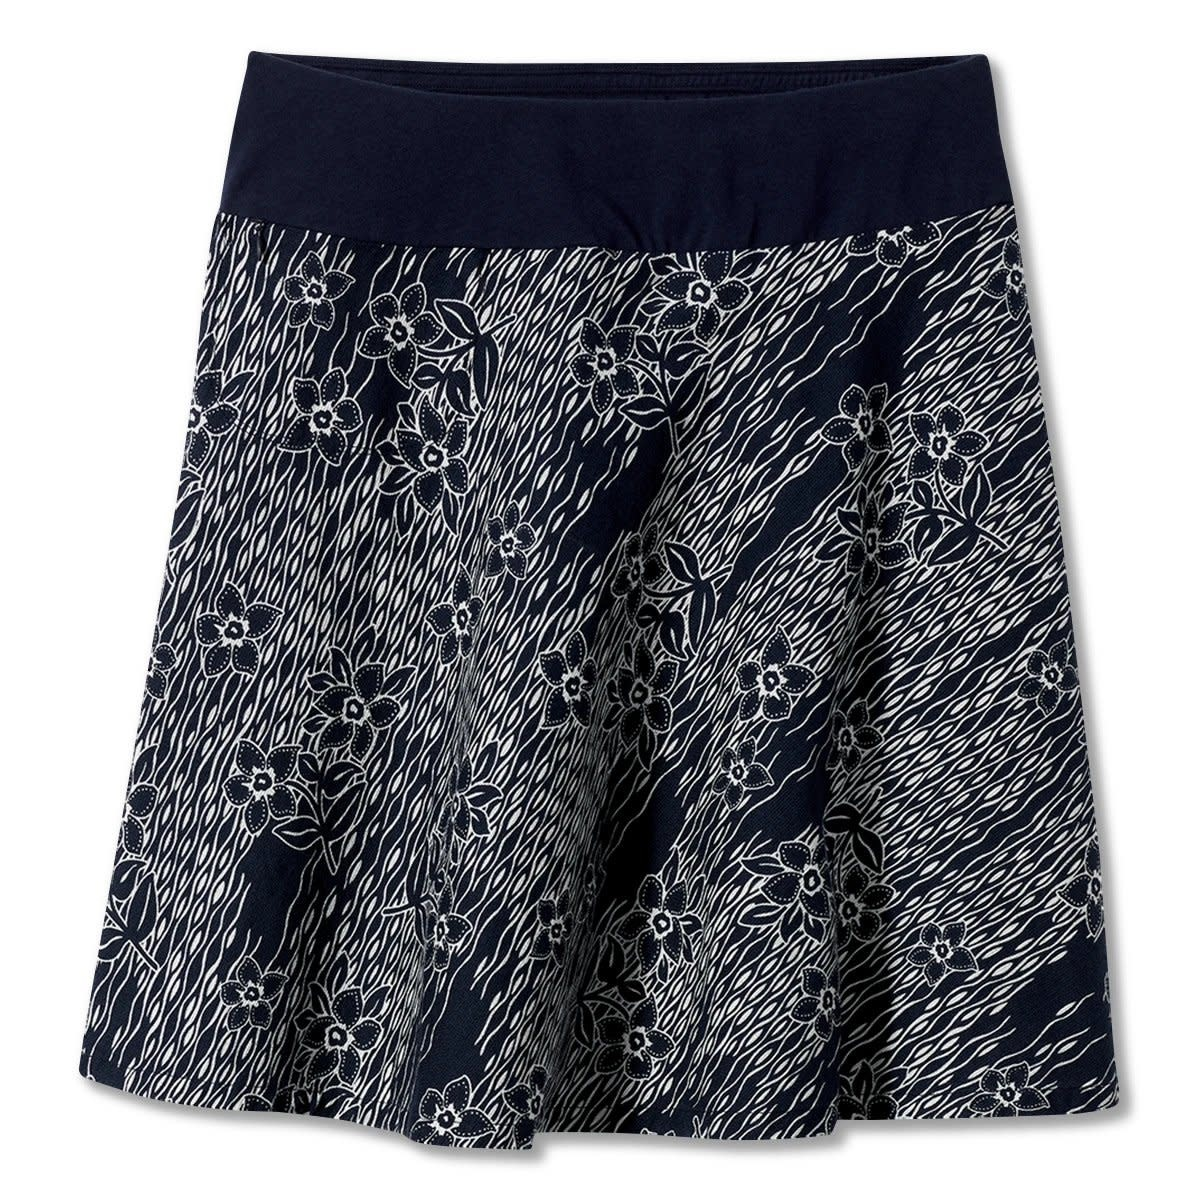 Royal Robbins CoolMesh Eco Skirt - Navy Print